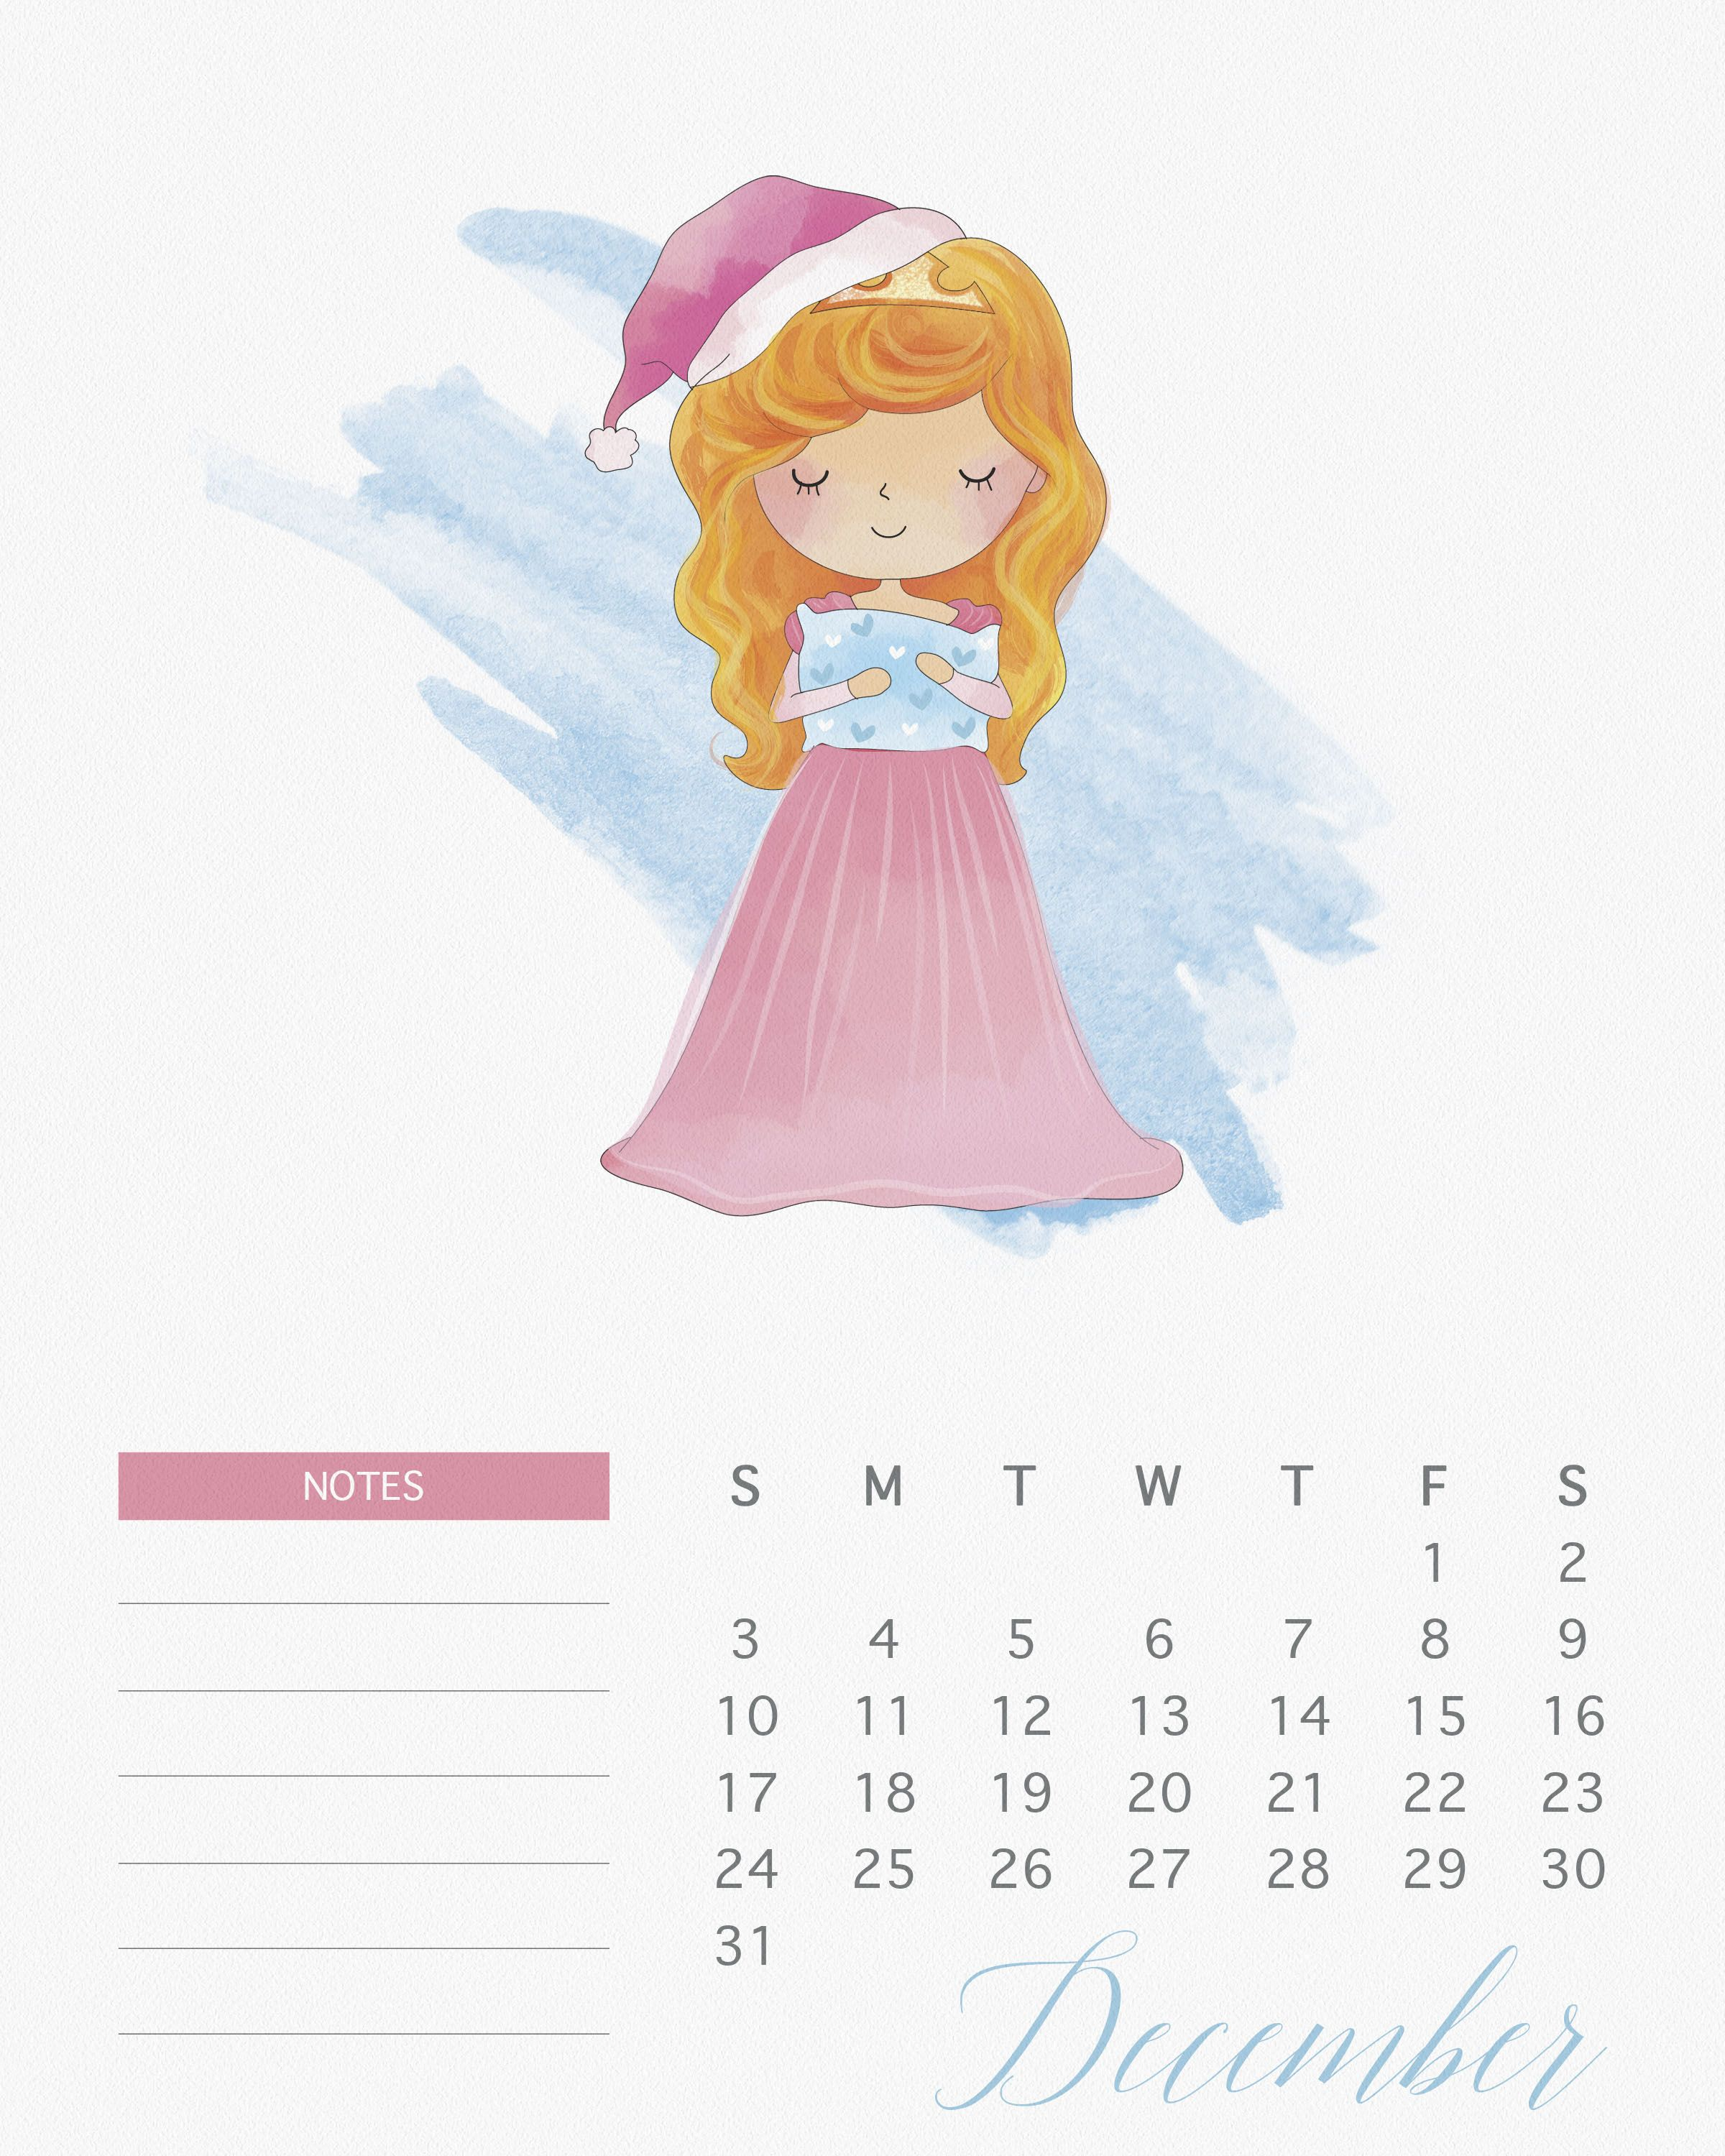 thecottagemarket.com 2017Calendars TCM-Princess-Calendar-12-December ...